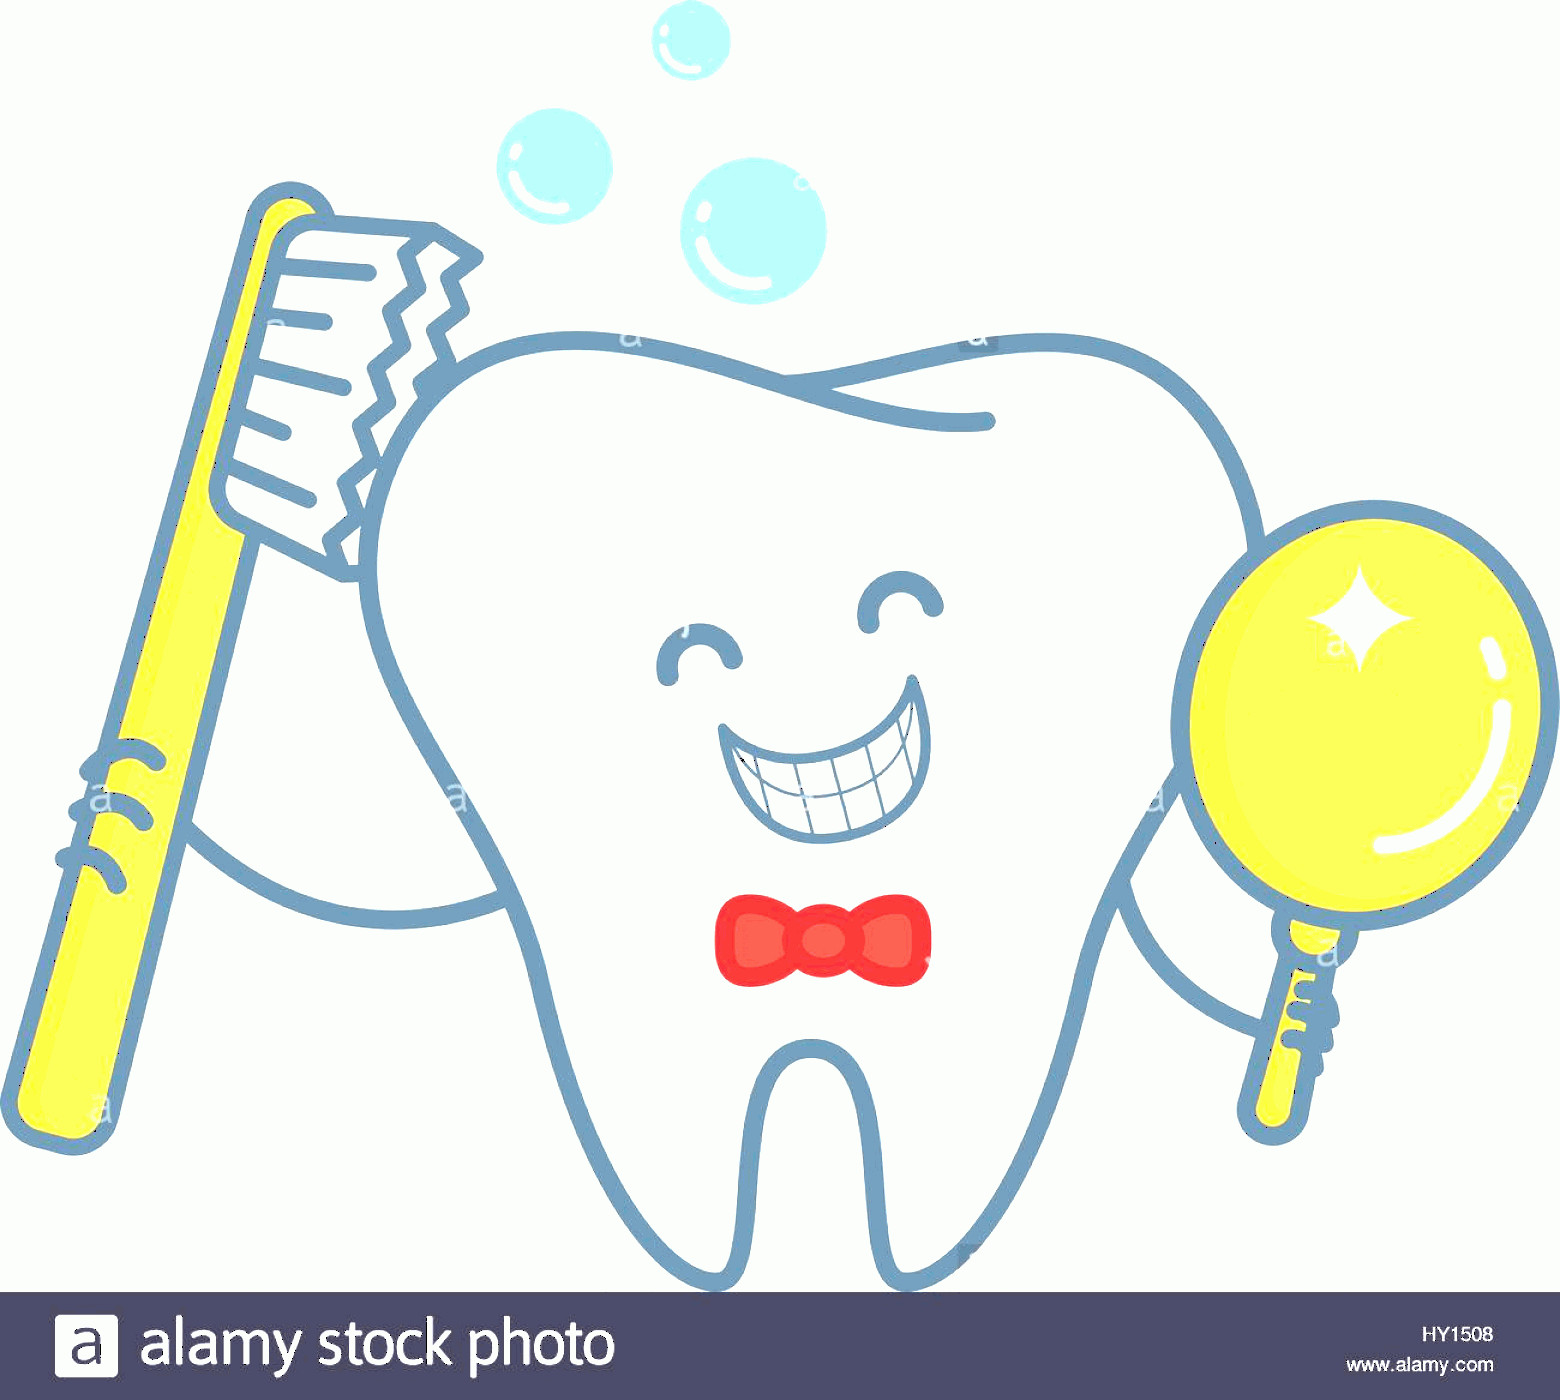 Toothpaste Cartoon Vector: Stock Photo Cartoon Tooth With Toothpaste And Mirror